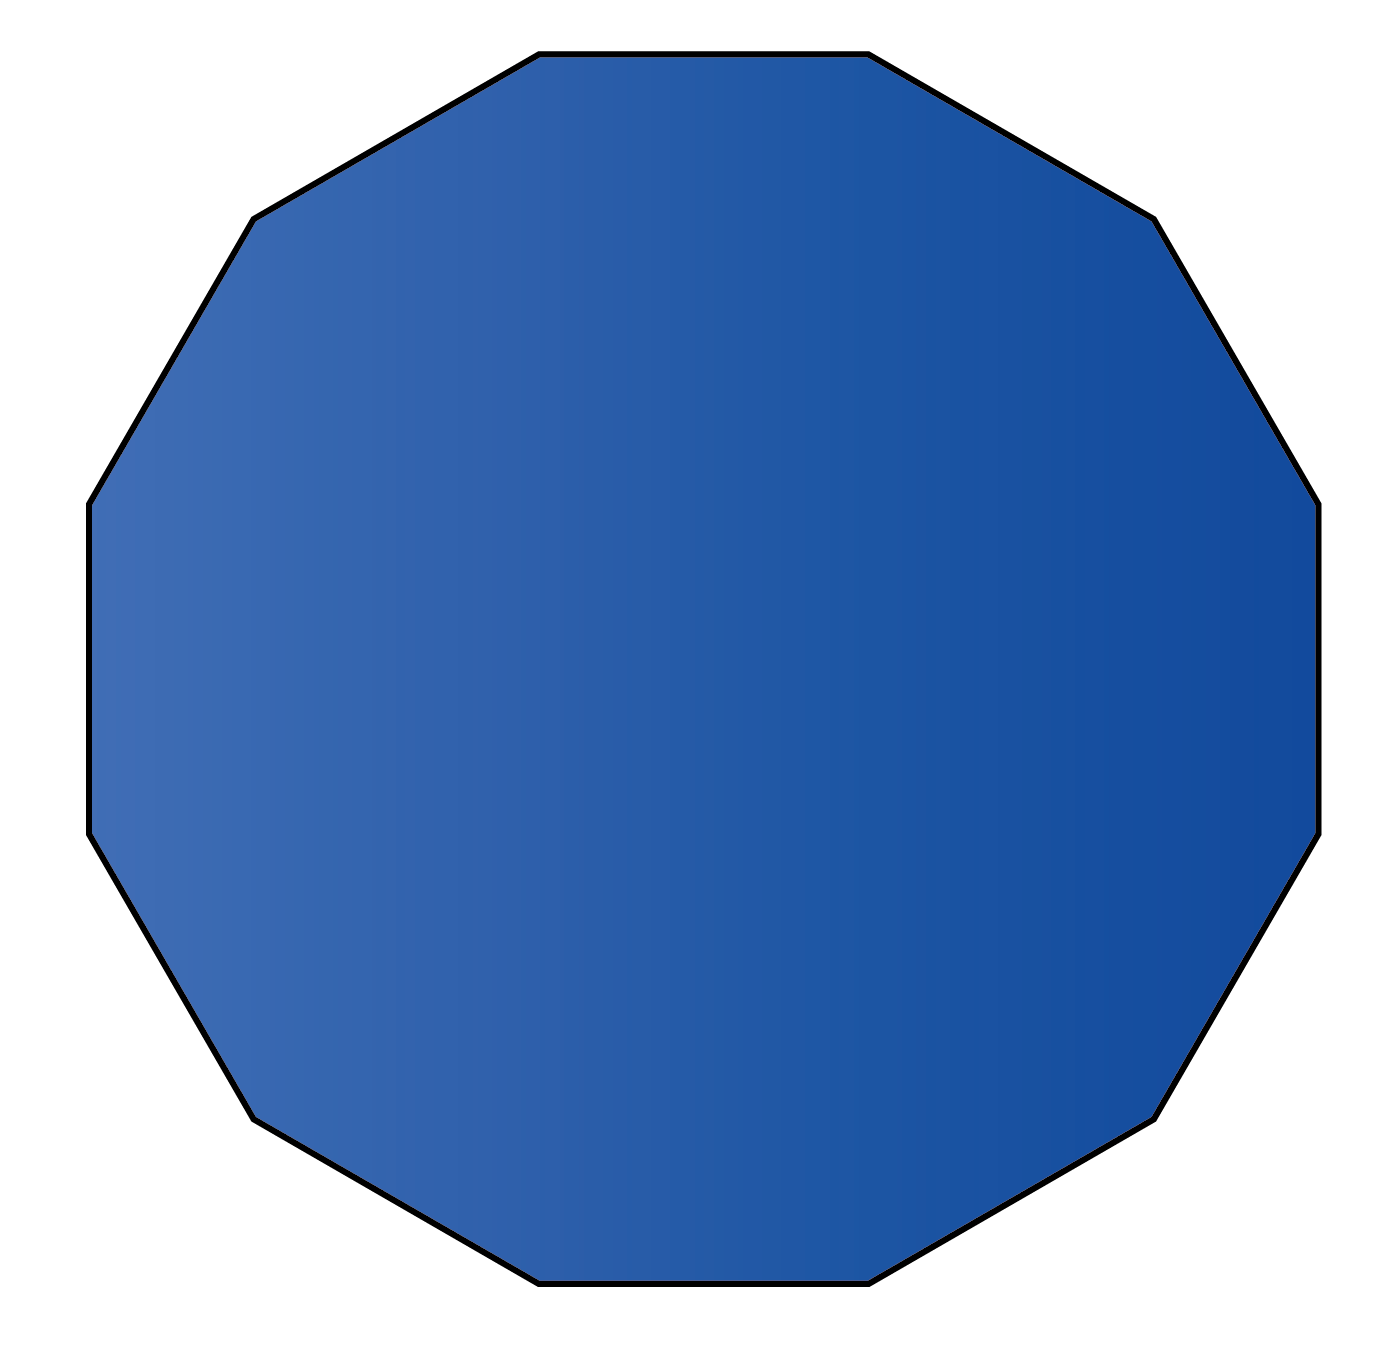 A dodecagon twelve sided polygon